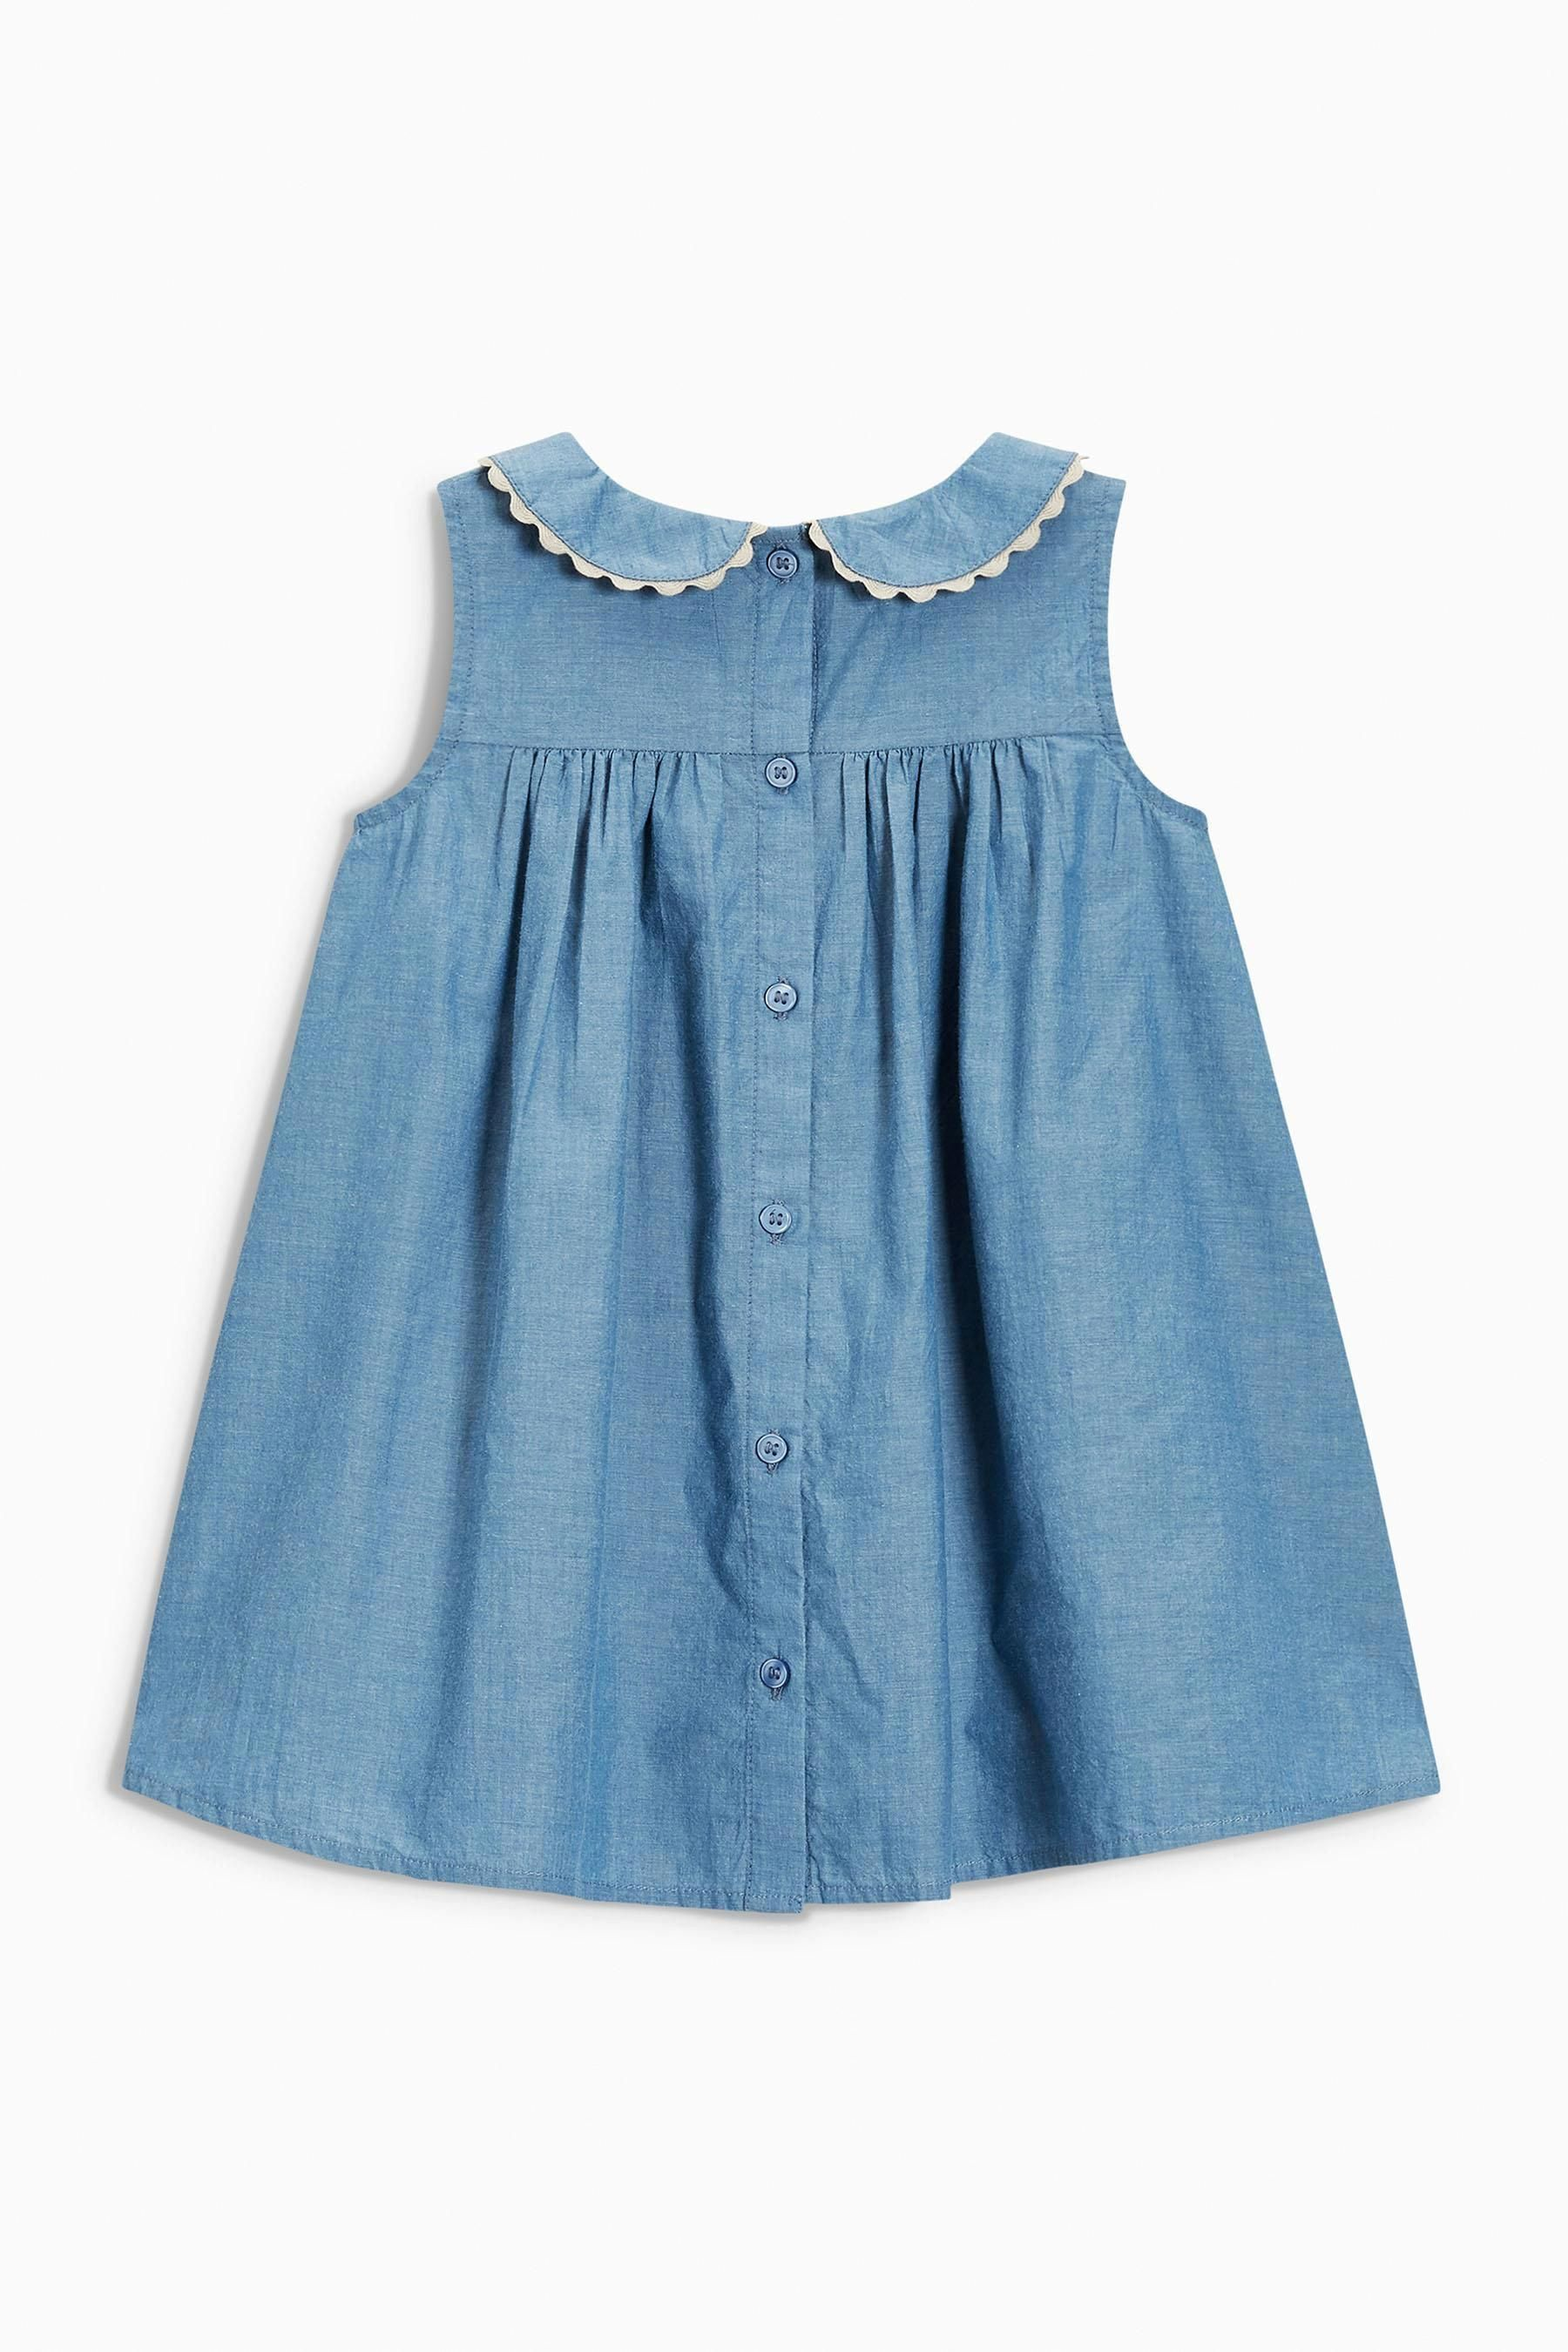 4253214d754 Discount Kids Clothes Online  BoyNewFashionDress ID 7856014537   KidsClothesSubscription